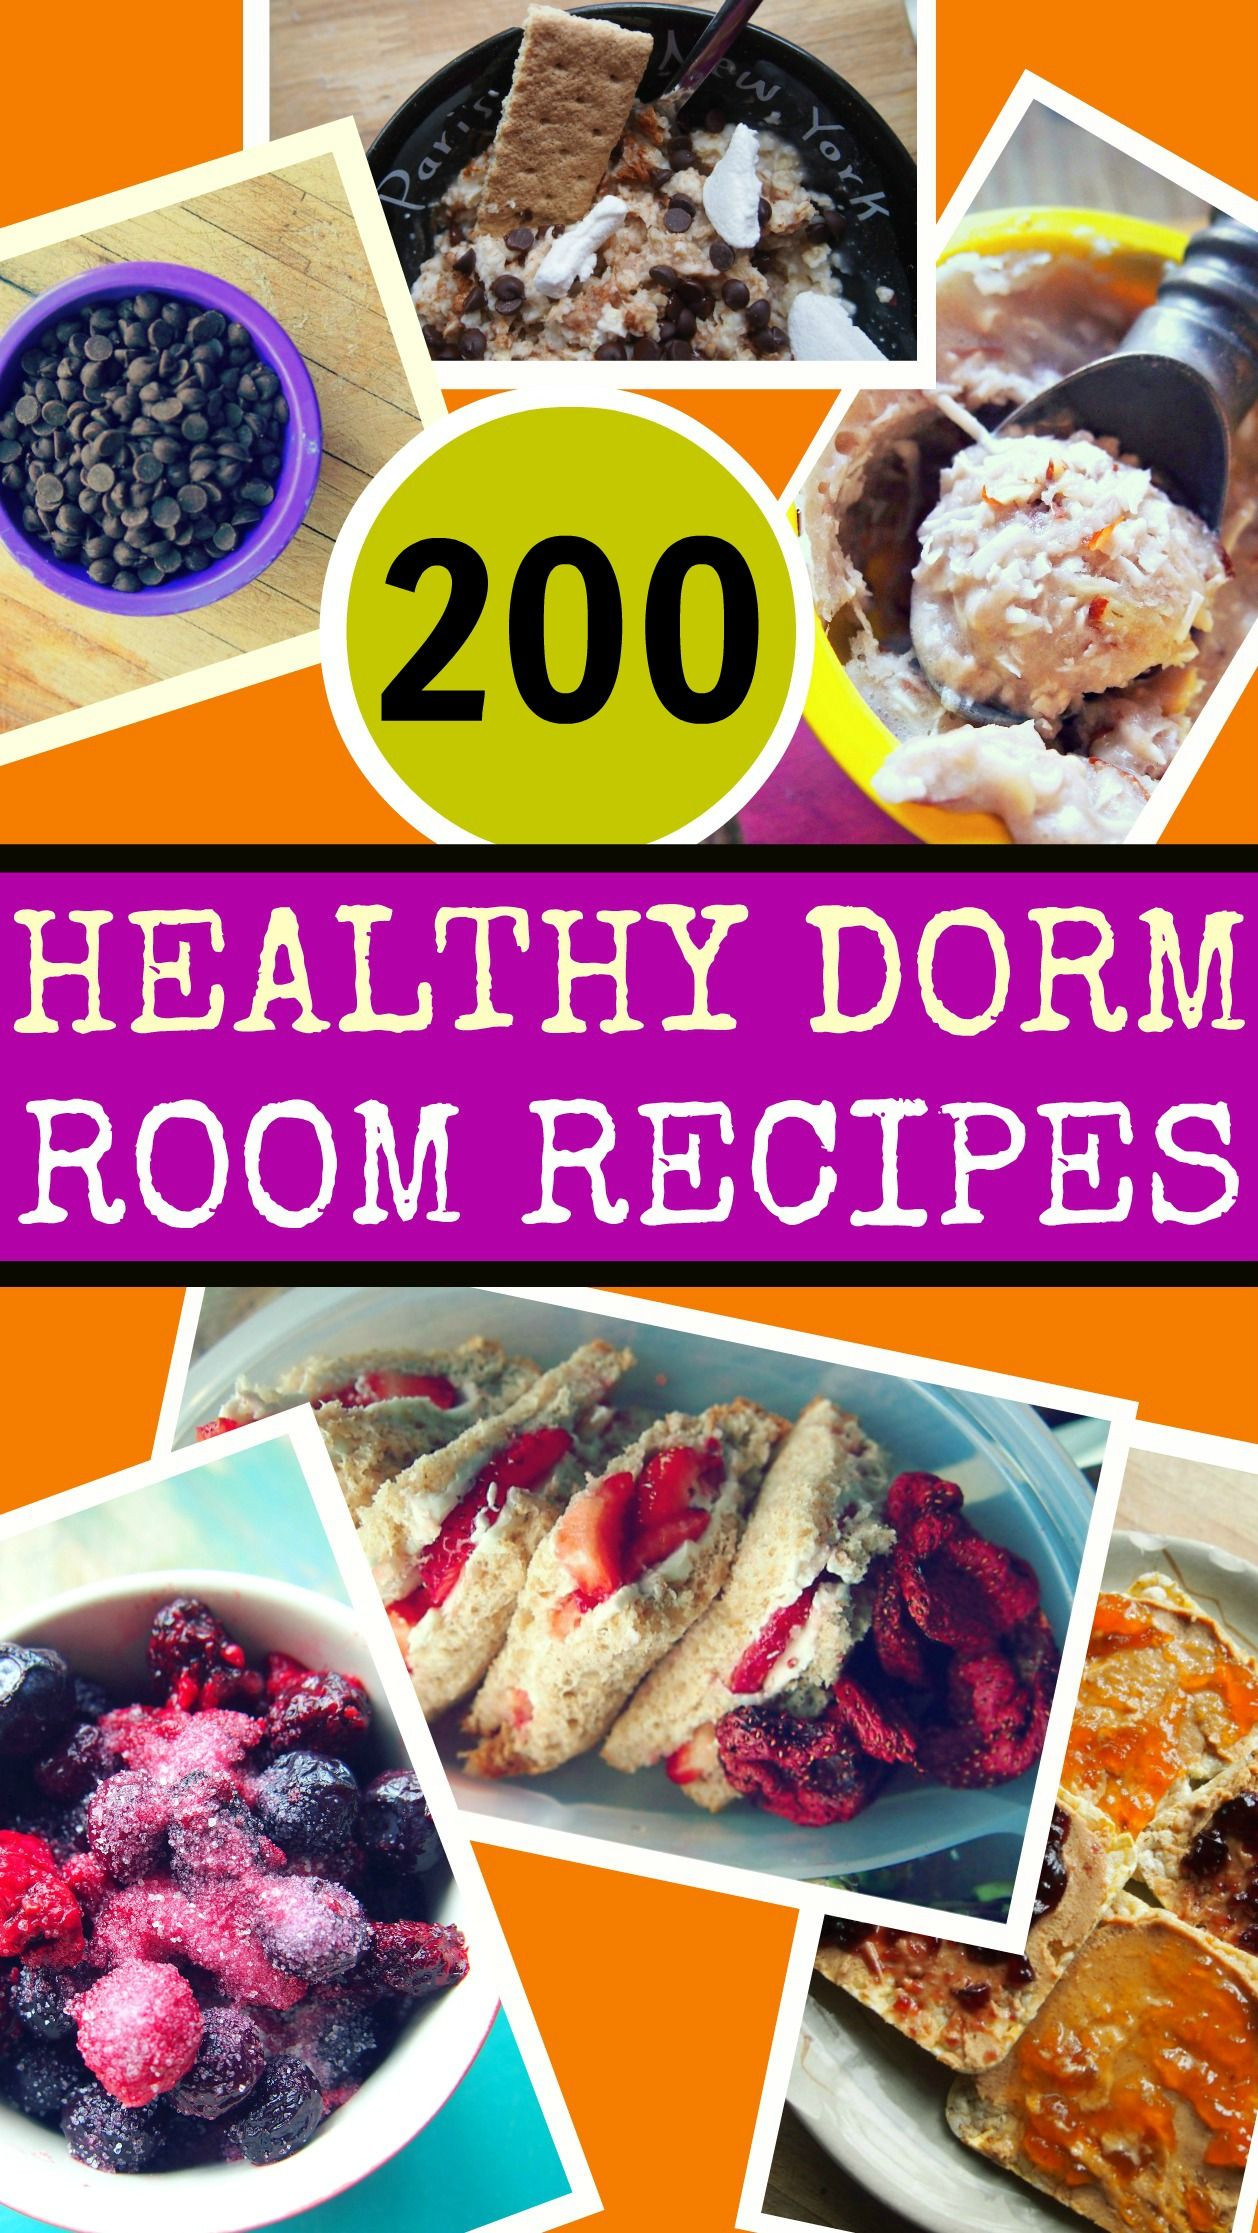 Healthy Snacks For College Students  200 Healthy Dorm Room Recipes by Taralynn McNitt I don t